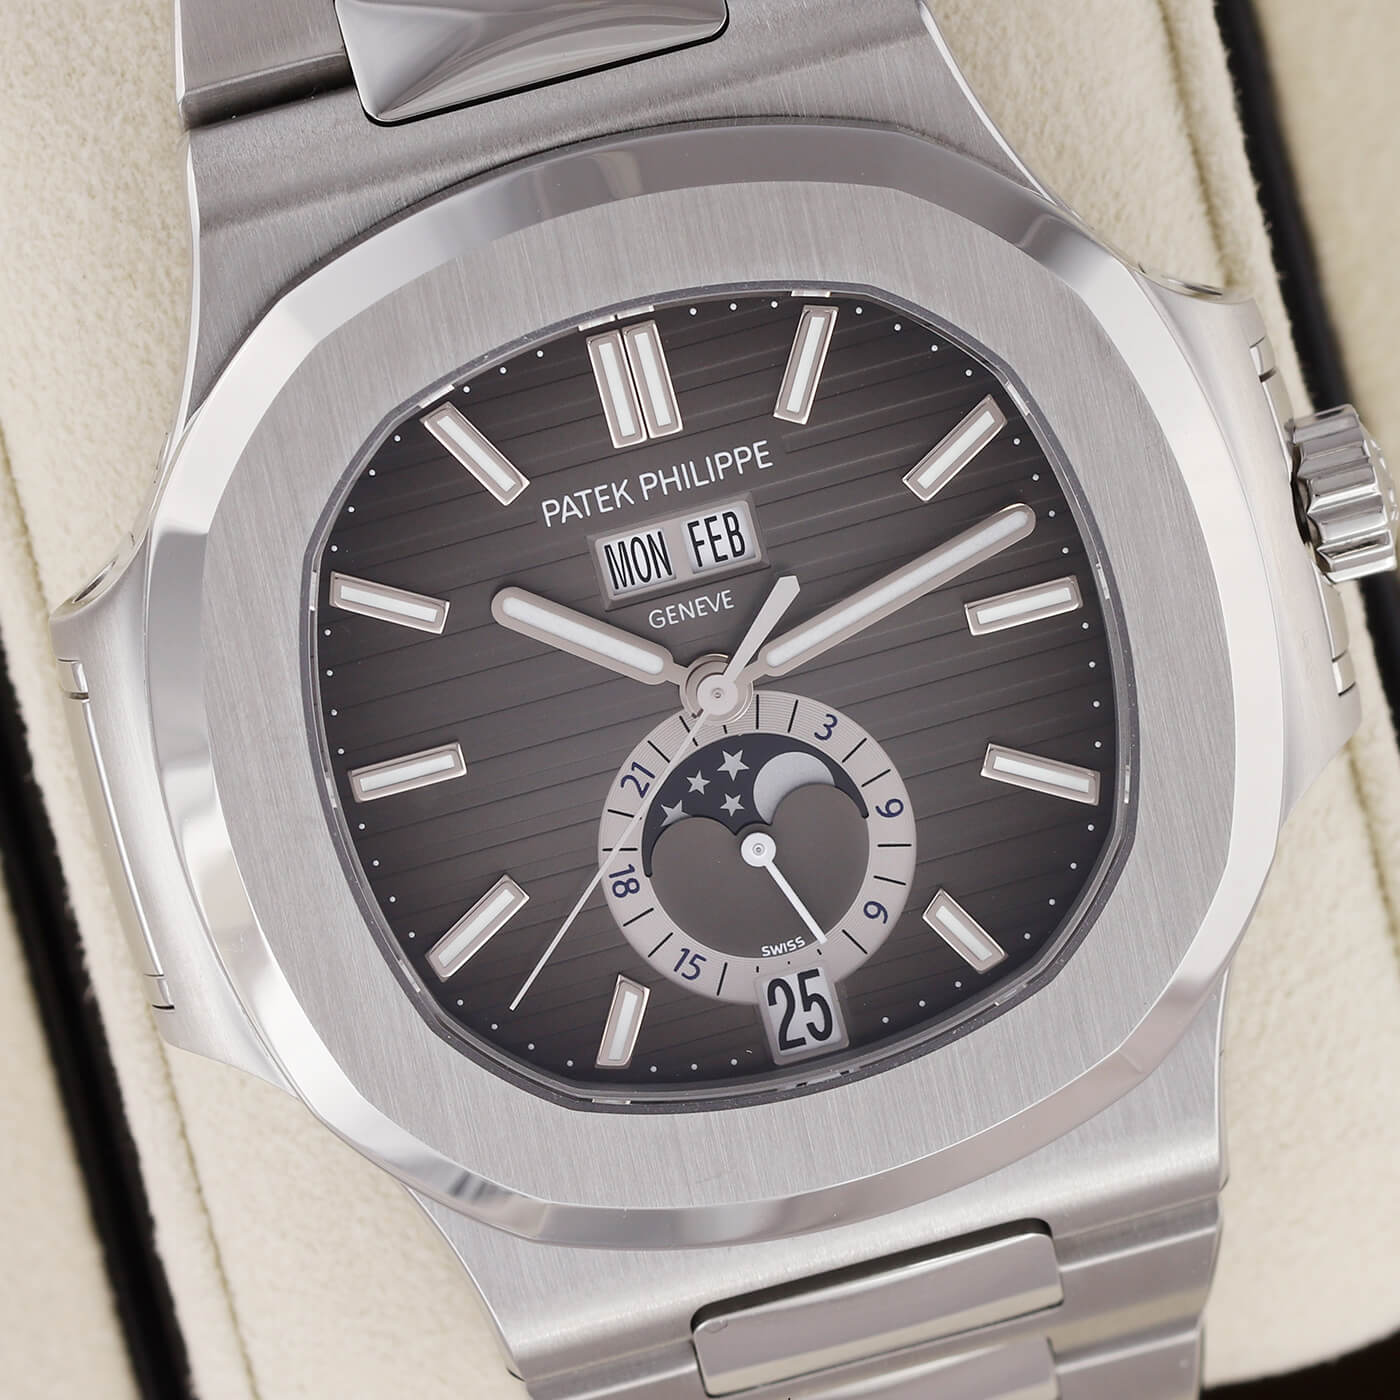 The most sought-after watches on the planet-Patek Philippe Nautilus Replica